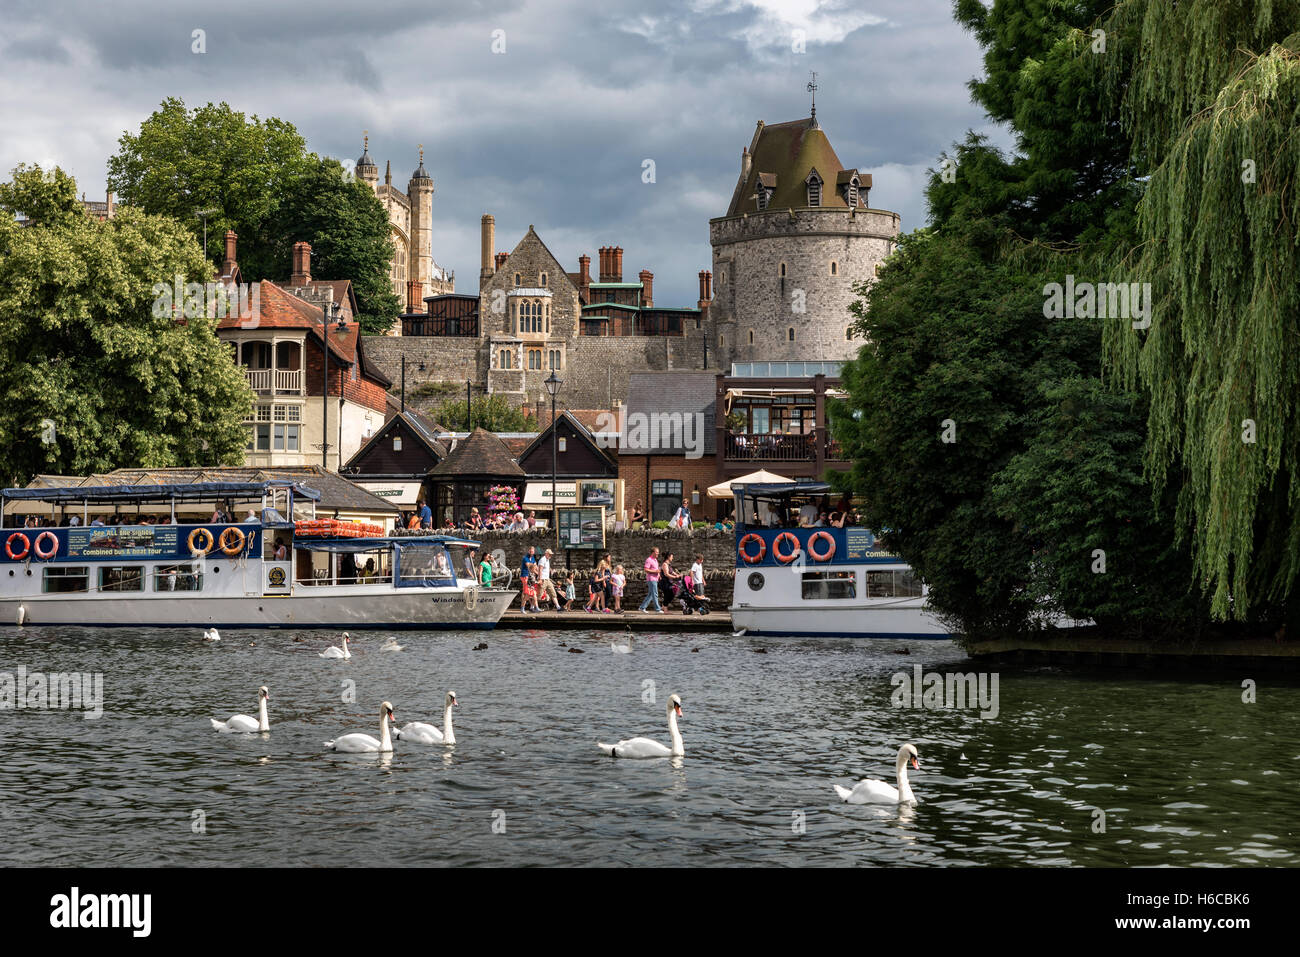 Picturesque of Windsor castle across the river Thames. - Stock Image